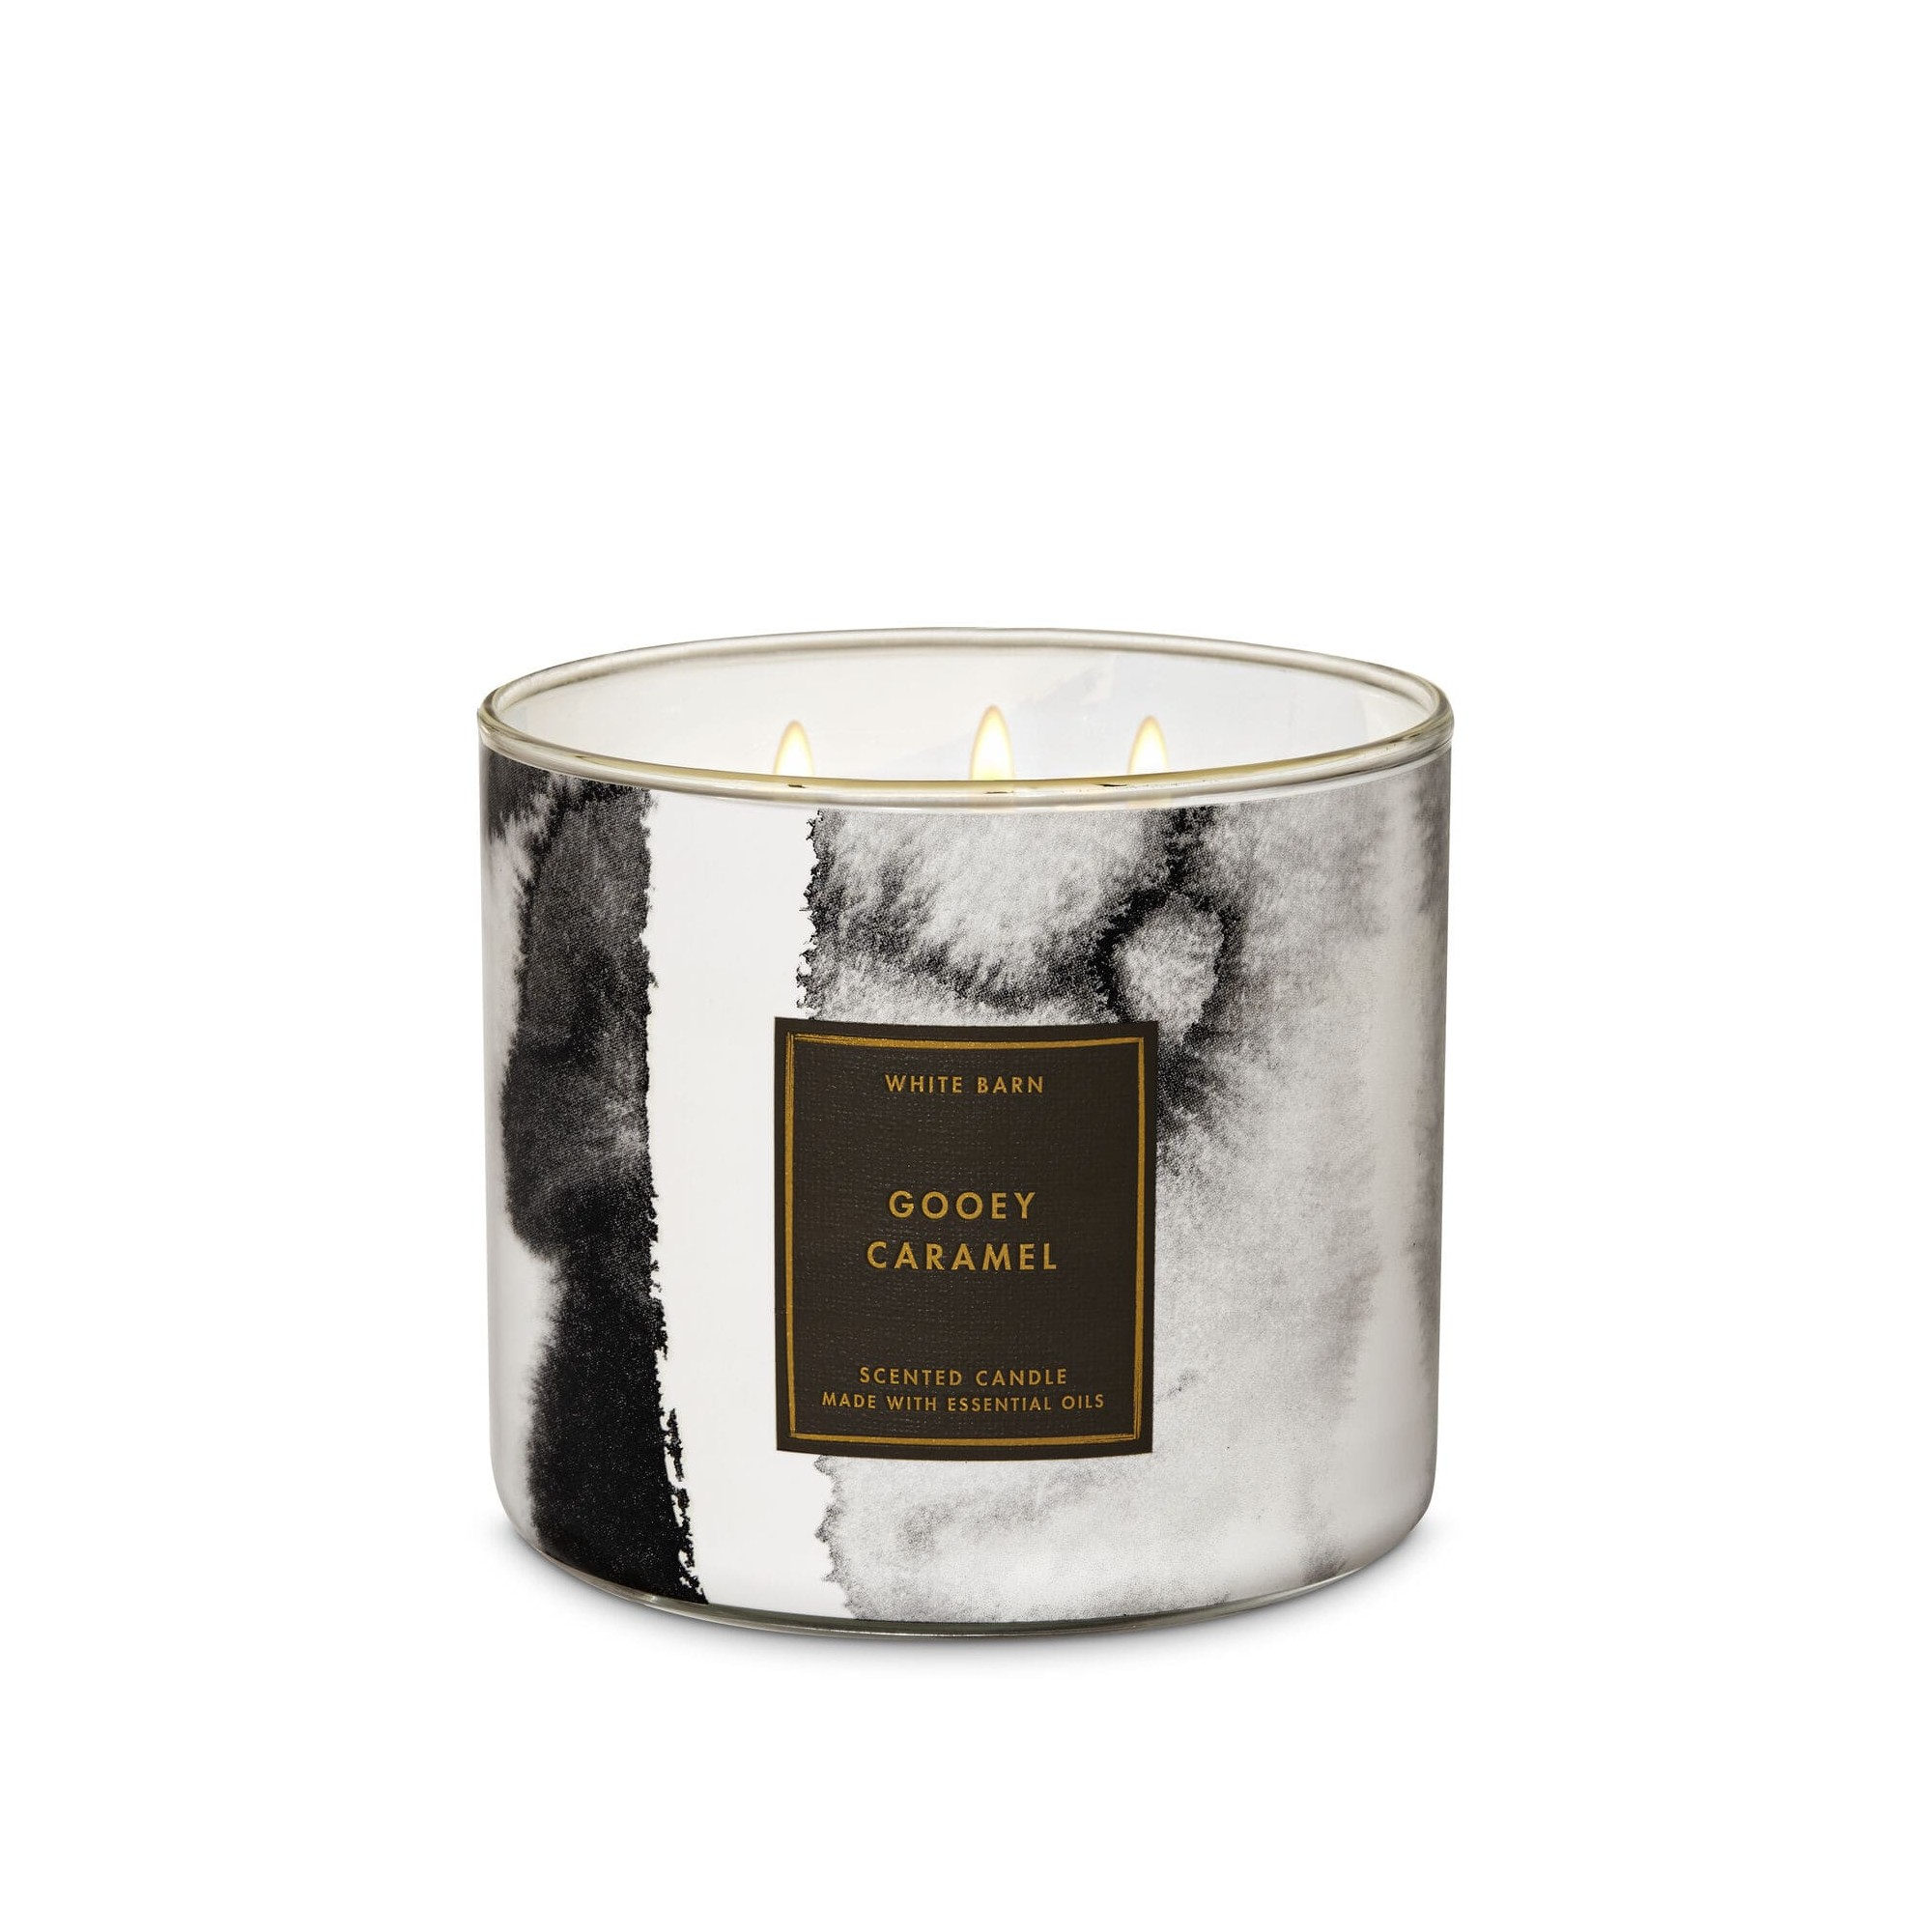 Bath & Body Works White Barn Gooey Caramel 3 Wick Scented Candle